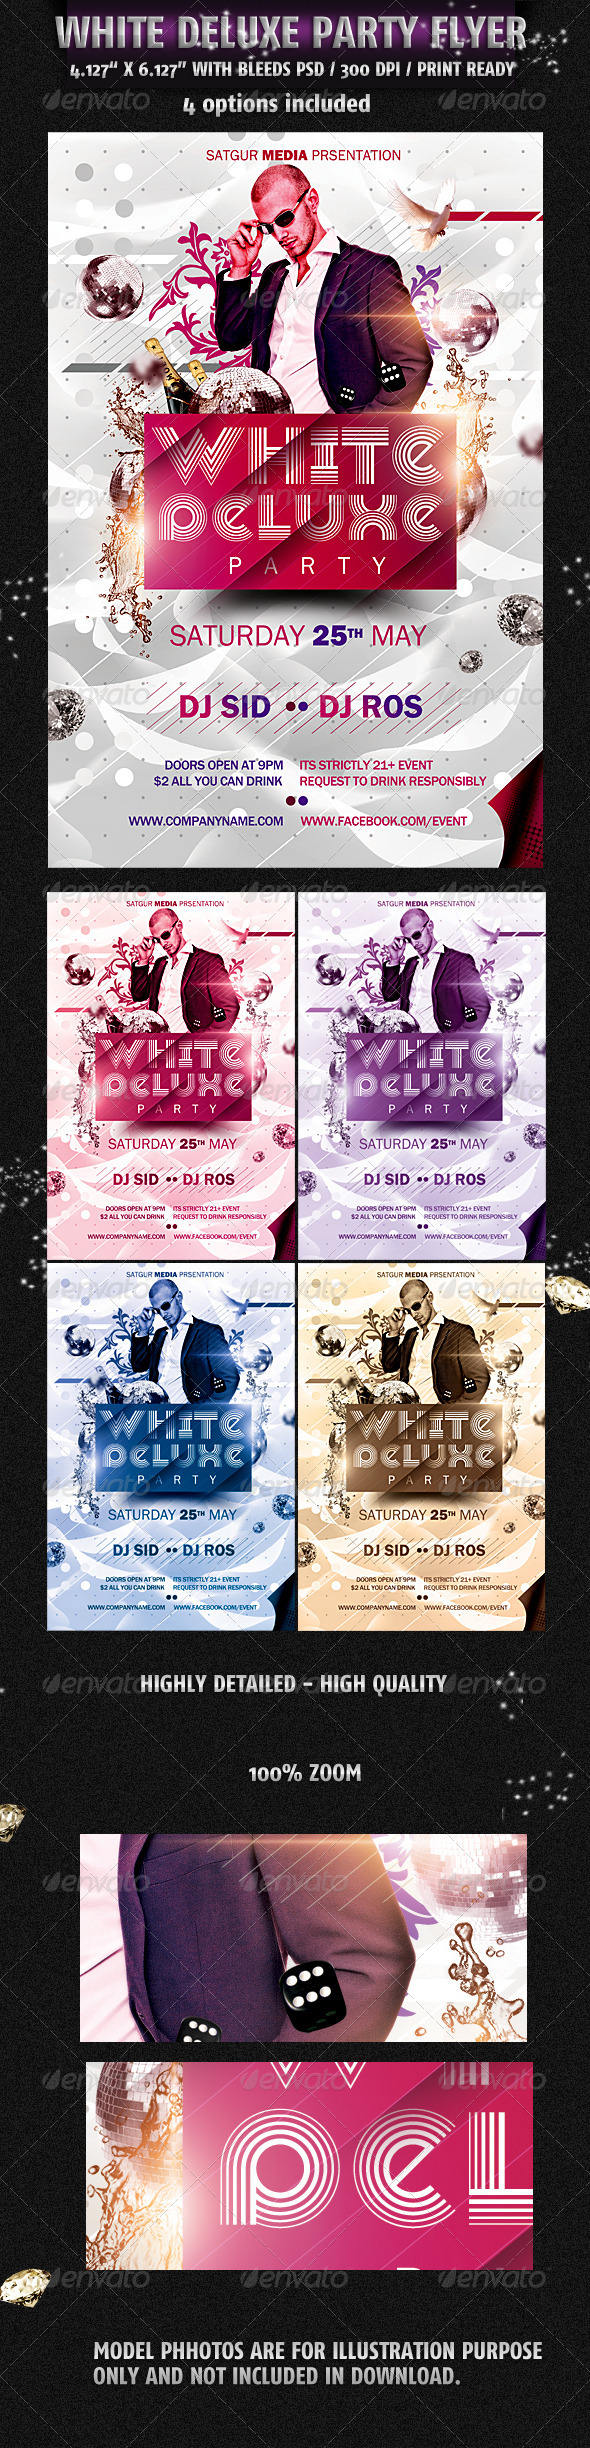 White Deluxe Party Flyer - Flyers Print Templates